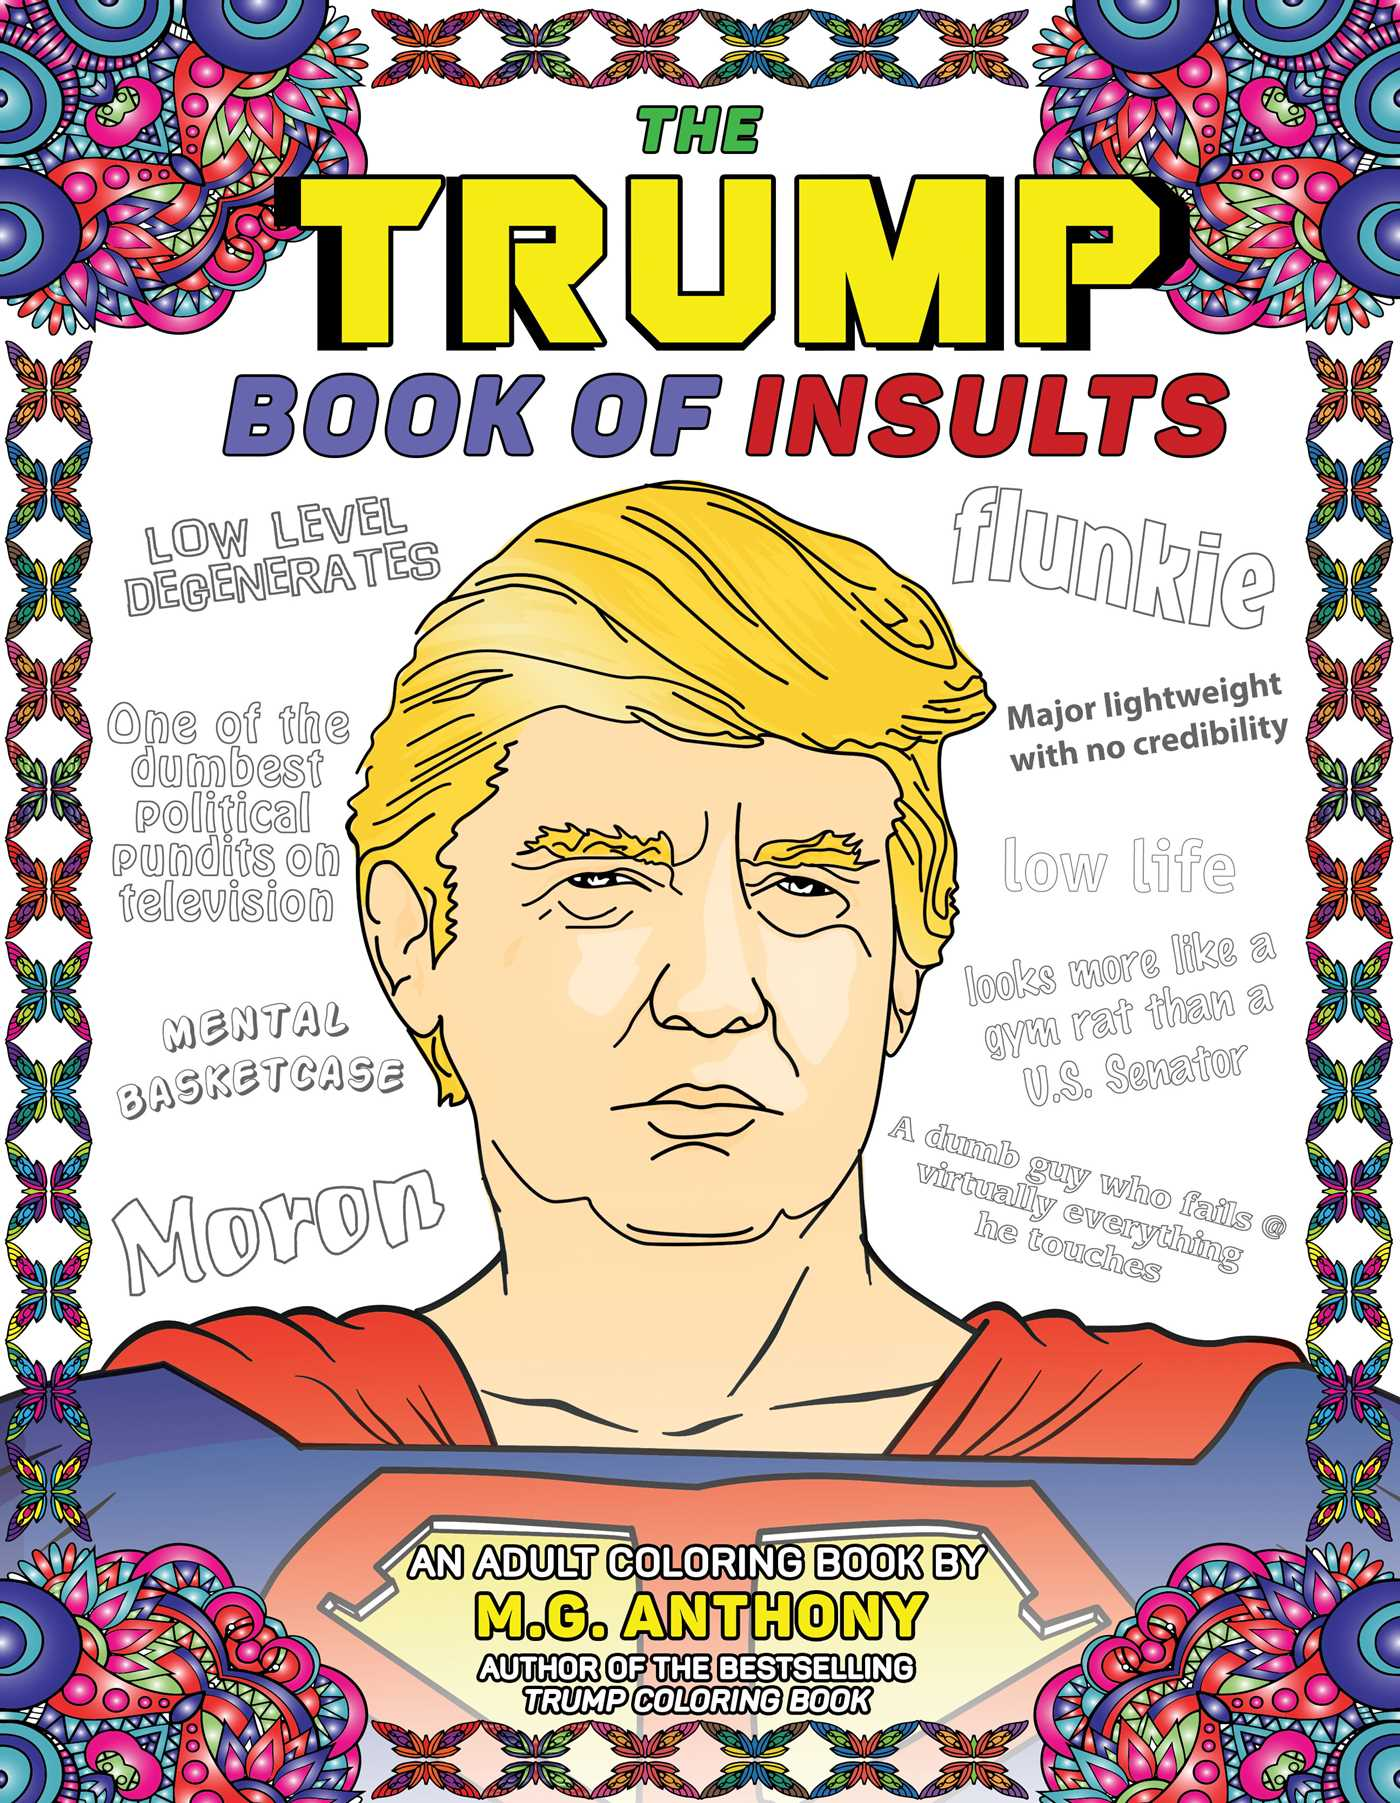 Available to children about the insult